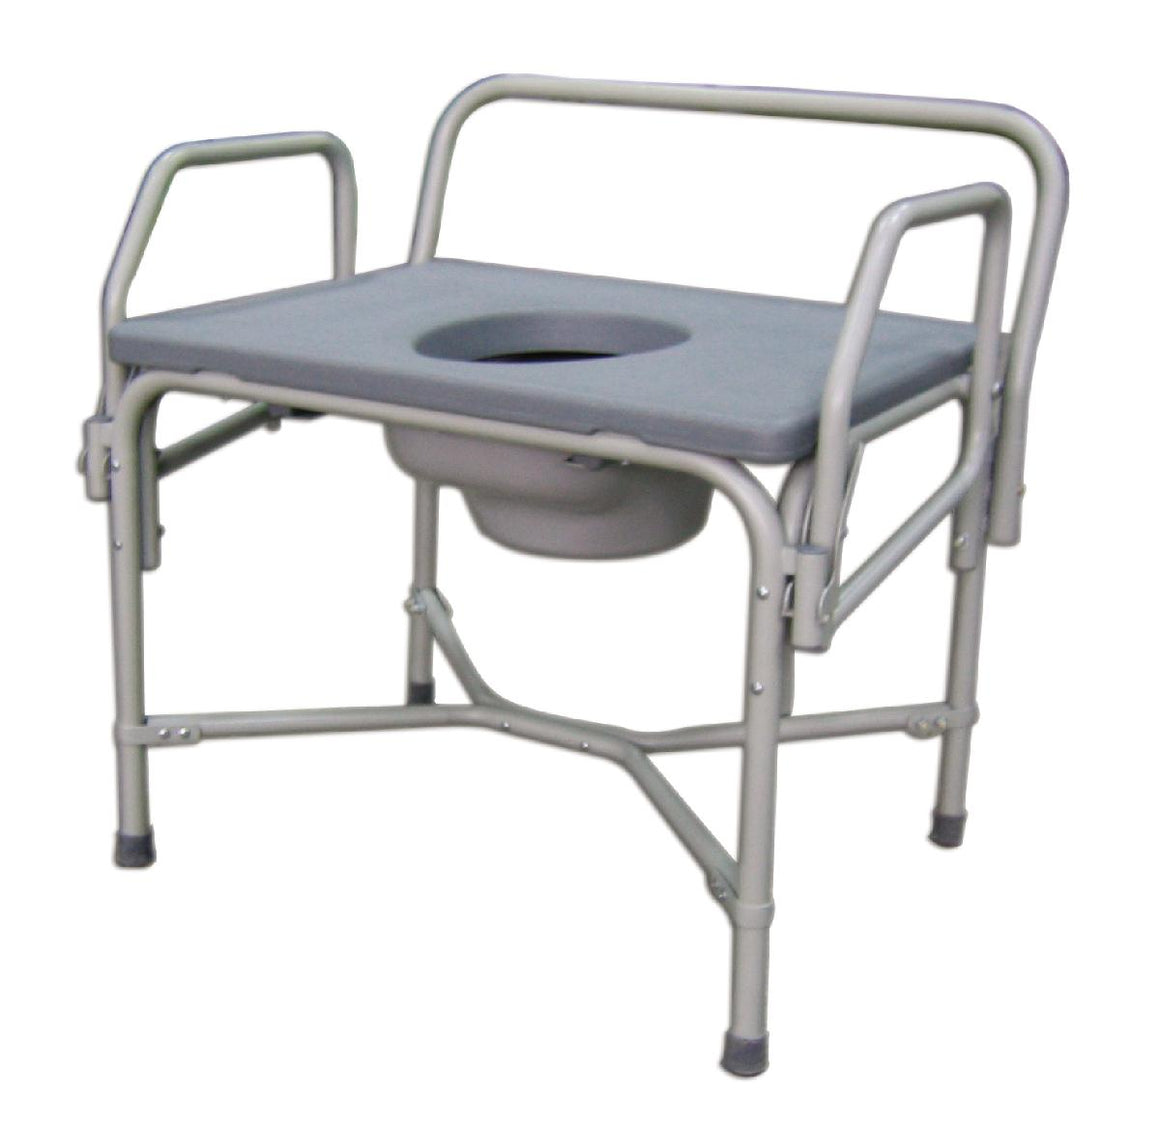 Bariatric Drop-Arm Commode, Case of 1